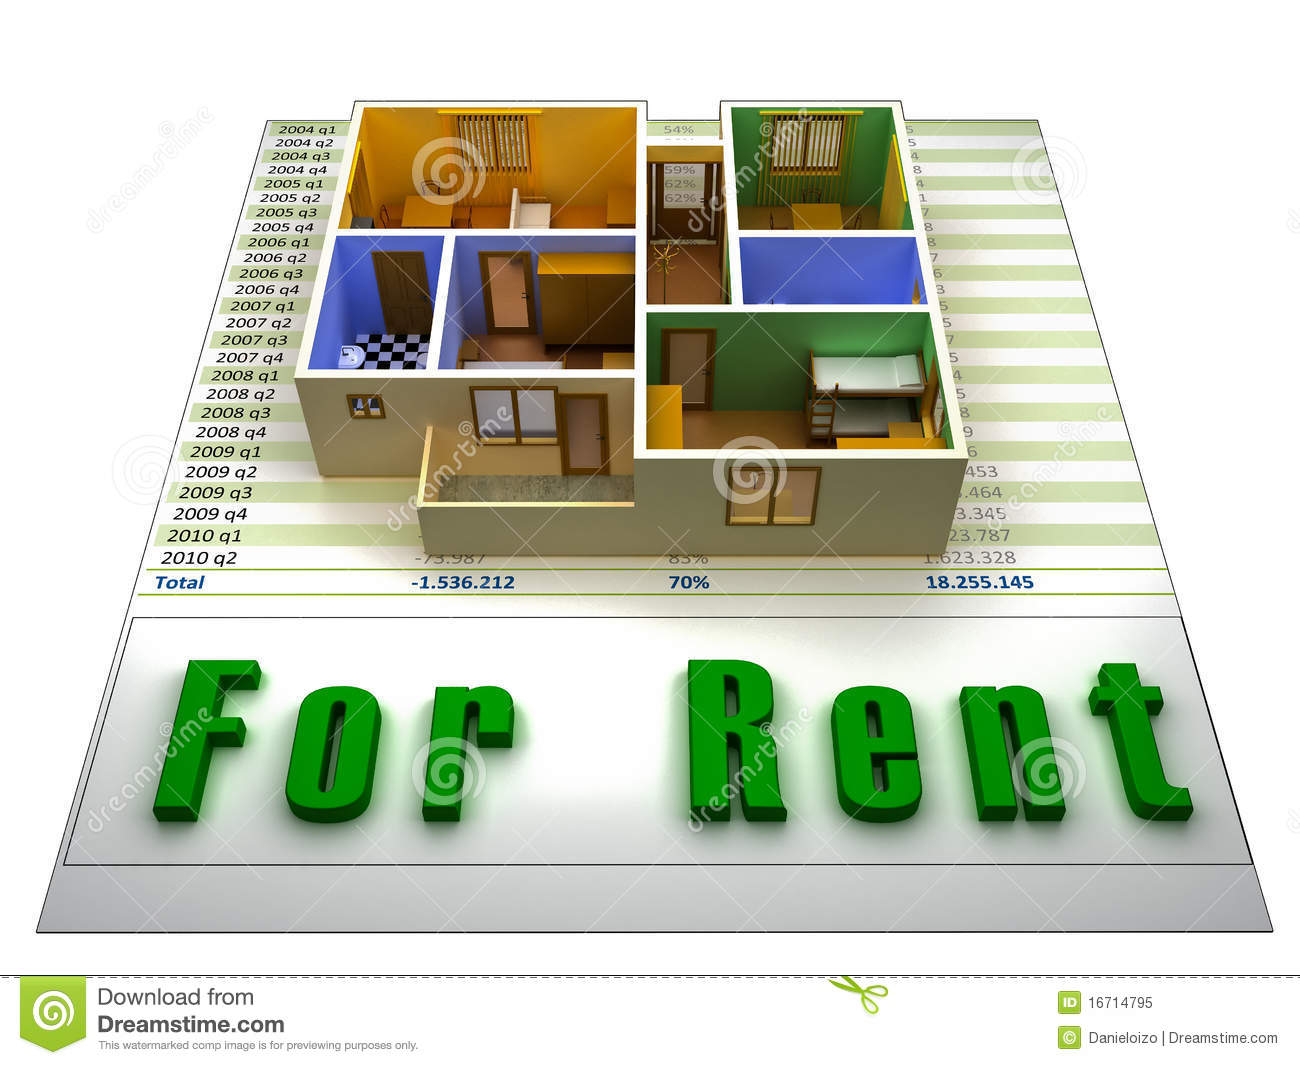 apartment for rent royalty free stock photo - image: 16714795